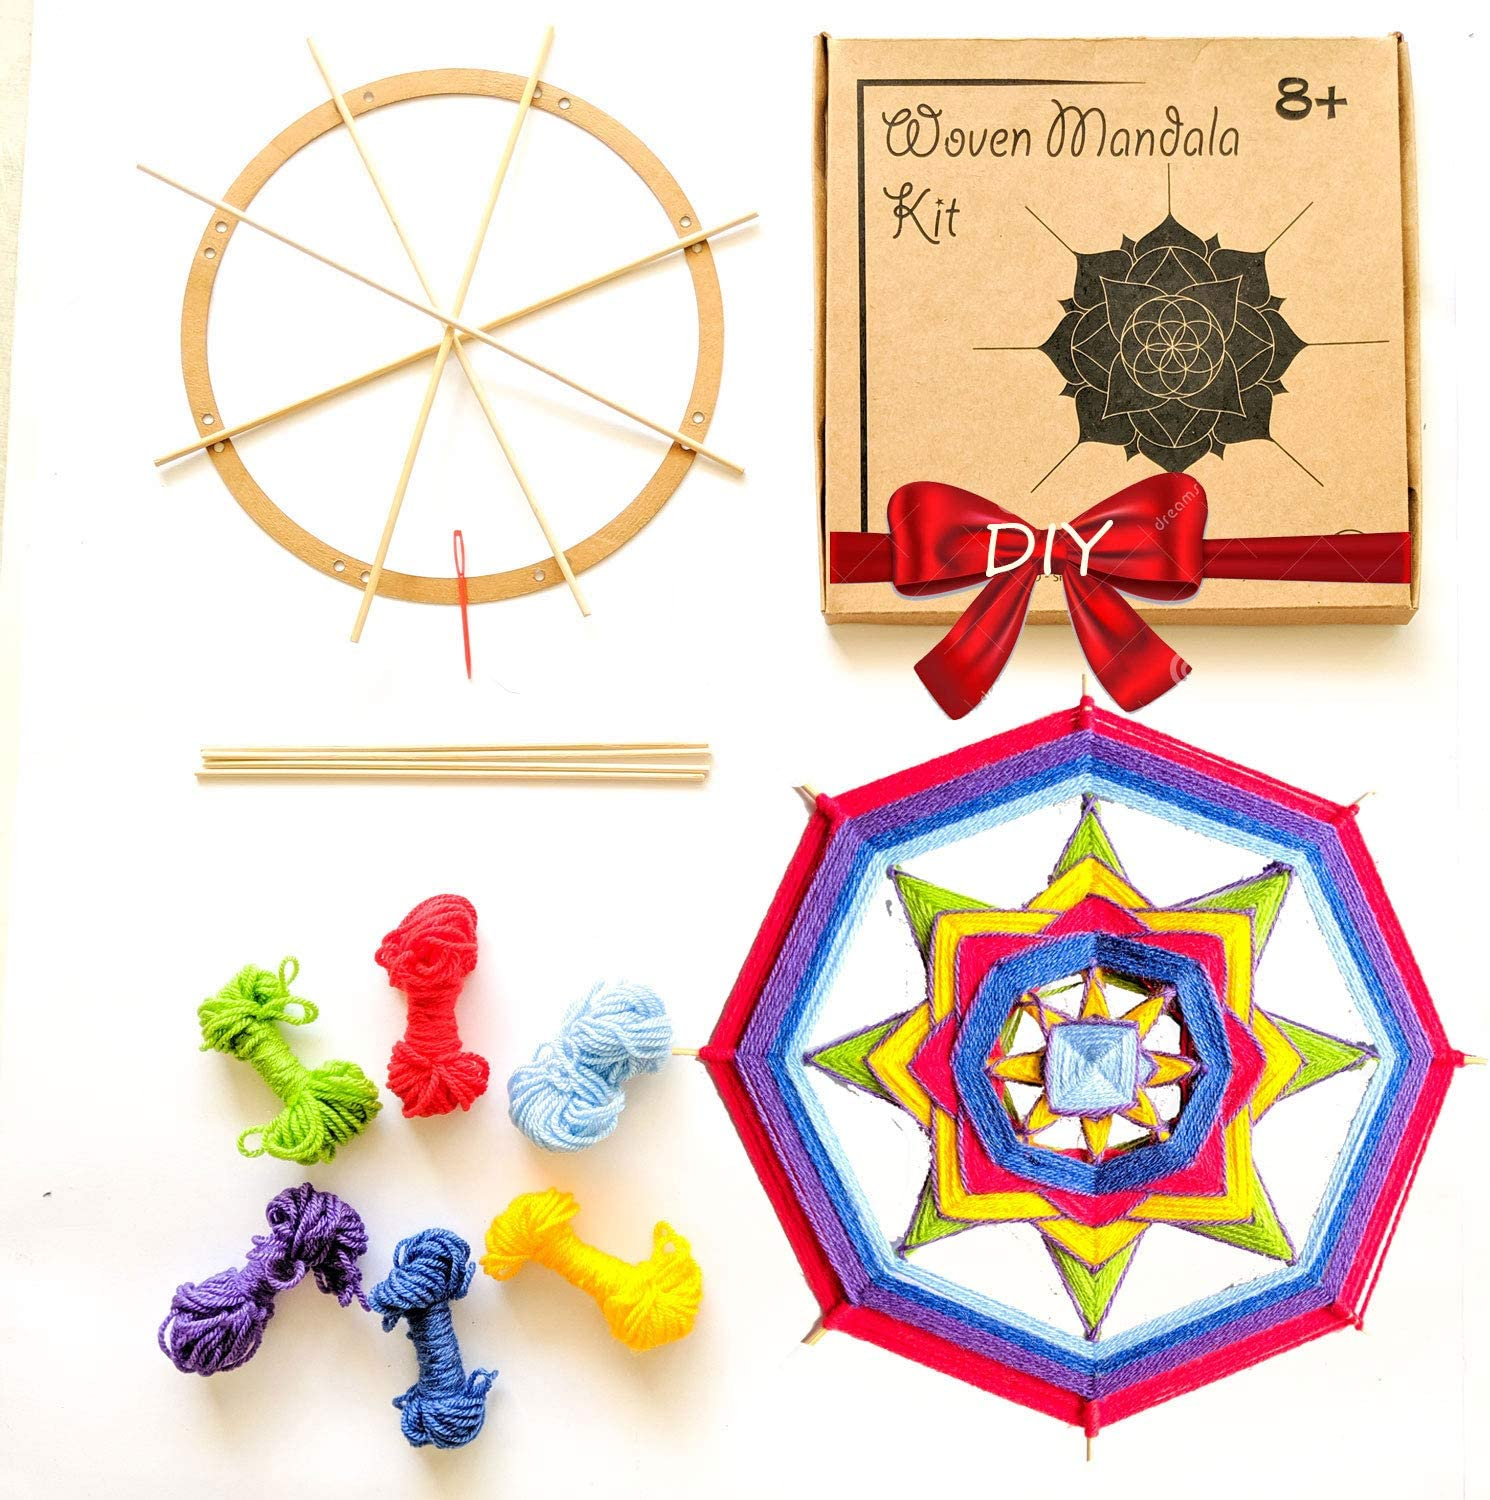 Make Your Own Bohemian Wall Hanging with All-Natural Materials-Creative Activity Set Includes Premium Cotton Yarn Cord Rope and Wooden Ring Hoop Mandala Life ART DIY Black Round Macrame Kit 12